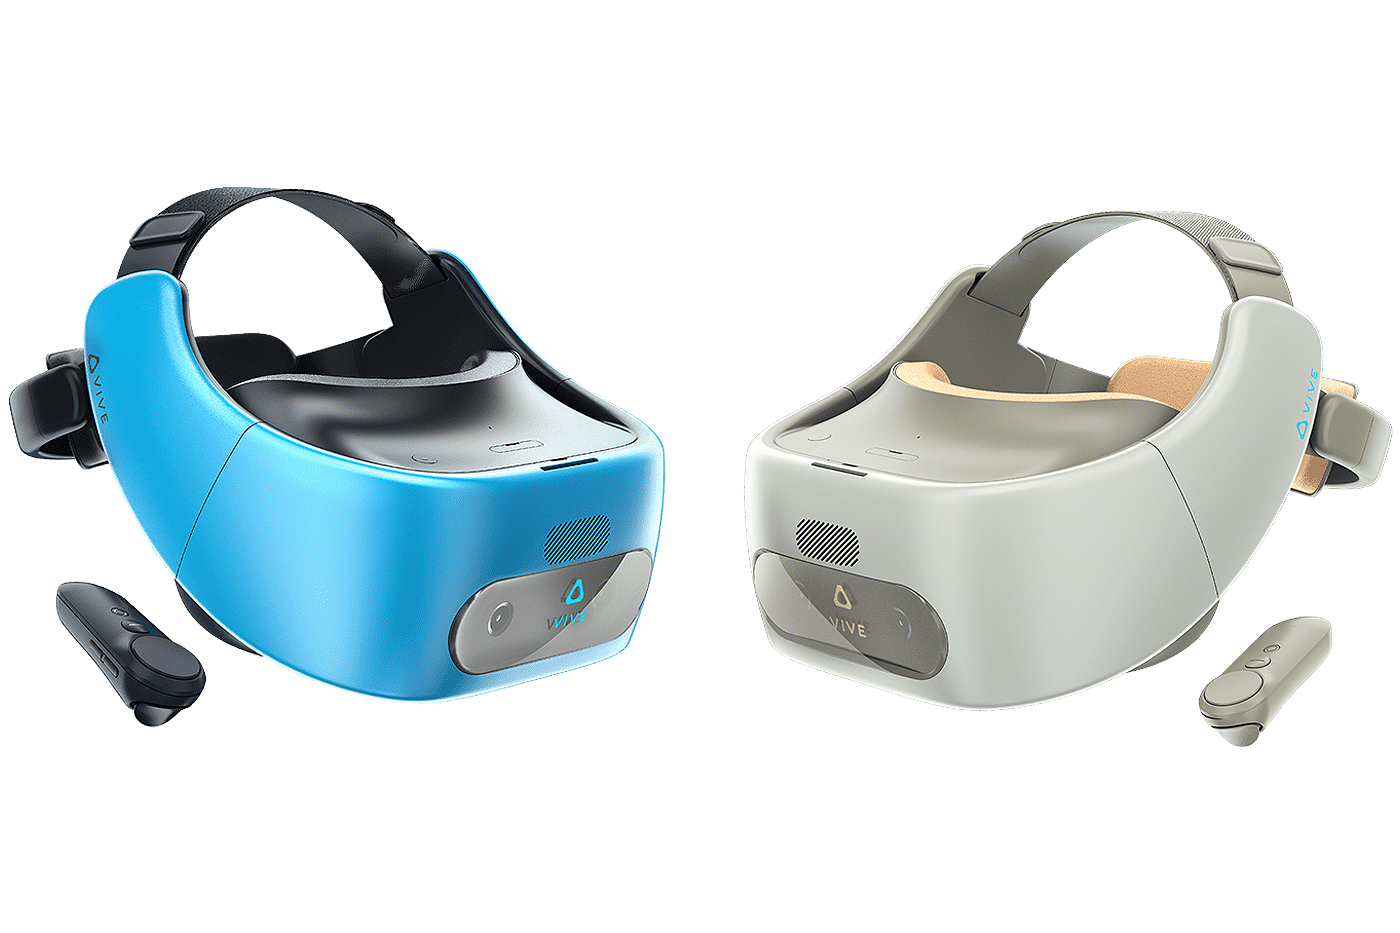 Vive Focus Models - Blue and Almond Colours.